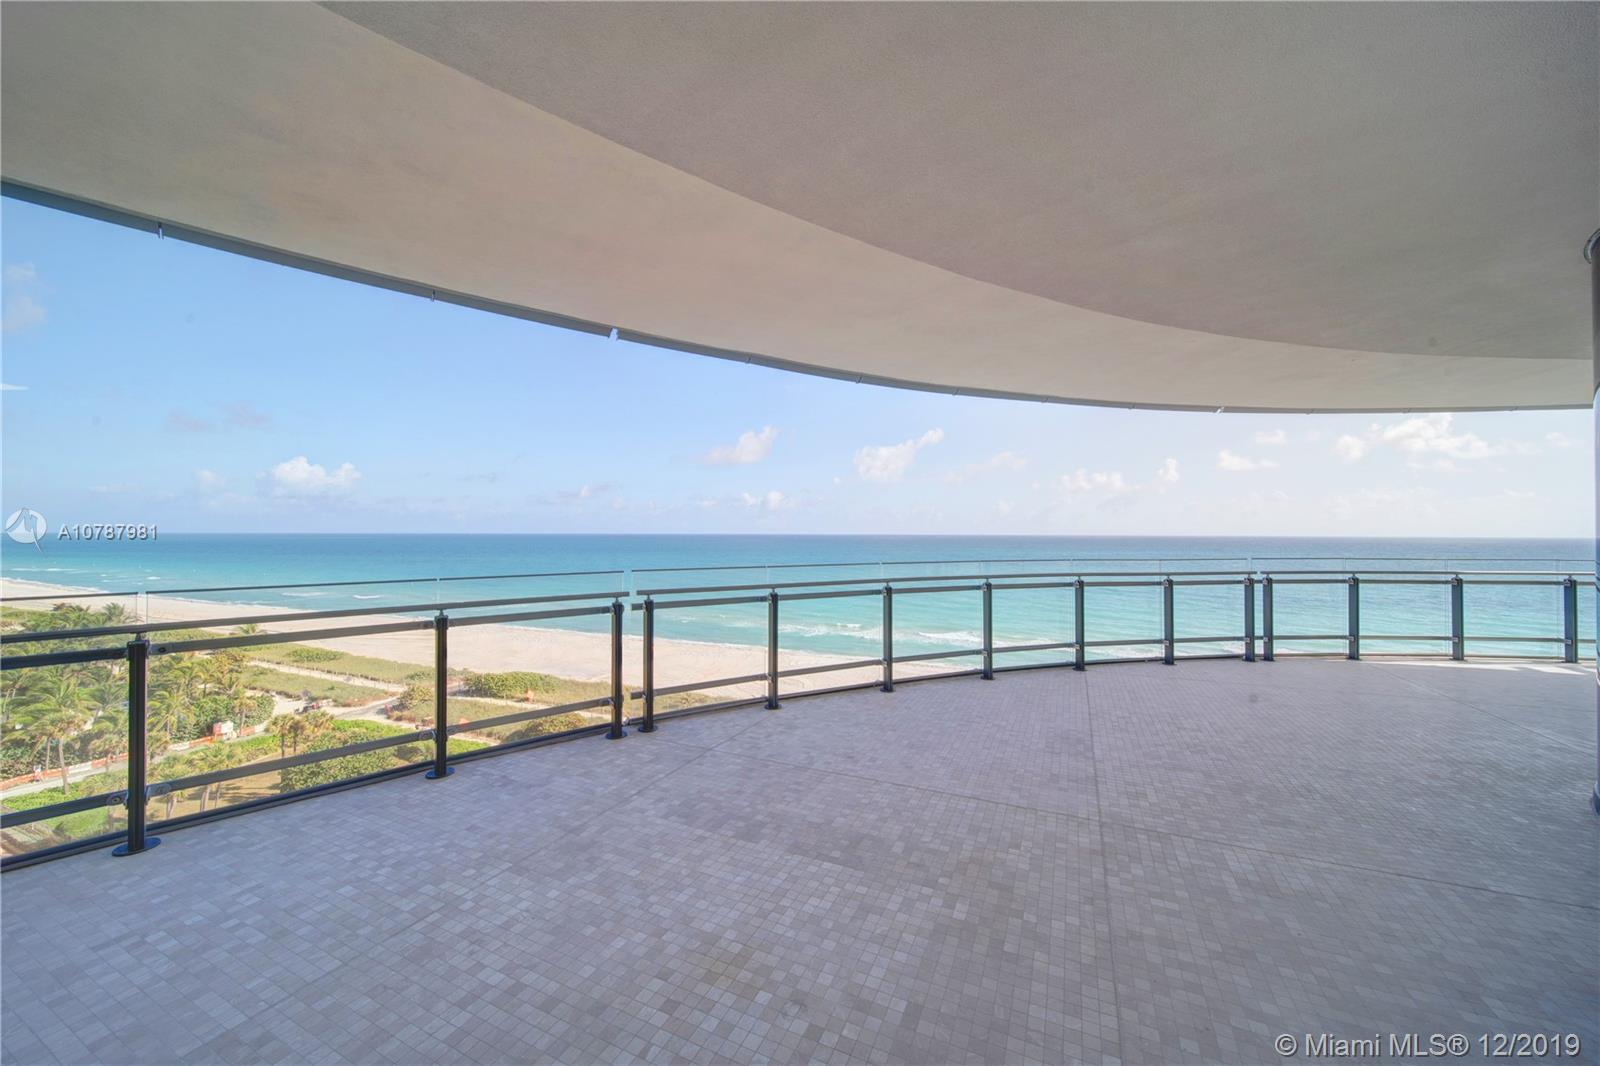 8701 Collins Ave, Unit #901 Luxury Real Estate